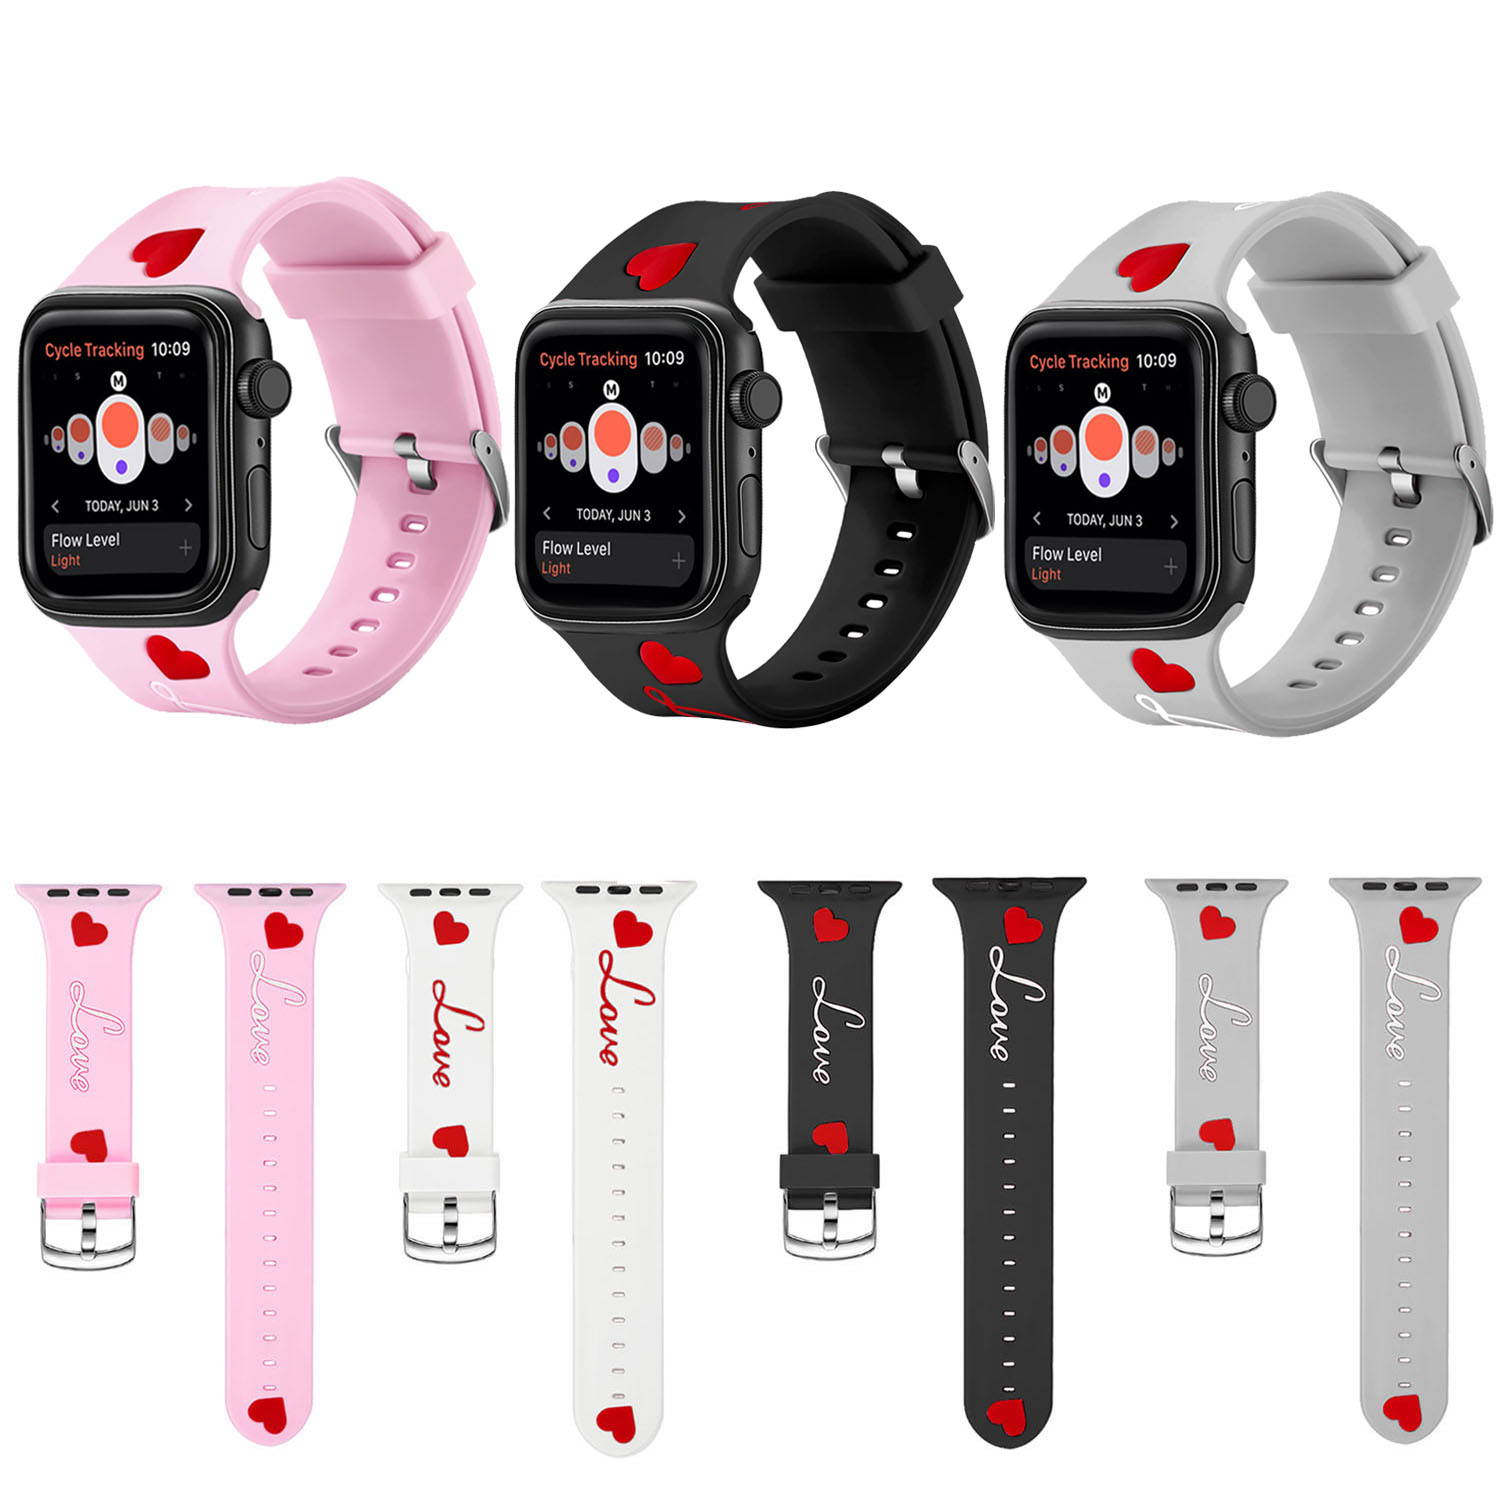 Watchband For Apple Watch 38mm 40mm 42mm 44mm Love Heart Soft Silicone Sport Strap For iWatch Series 4 3 2 1 Bracelet Wristband